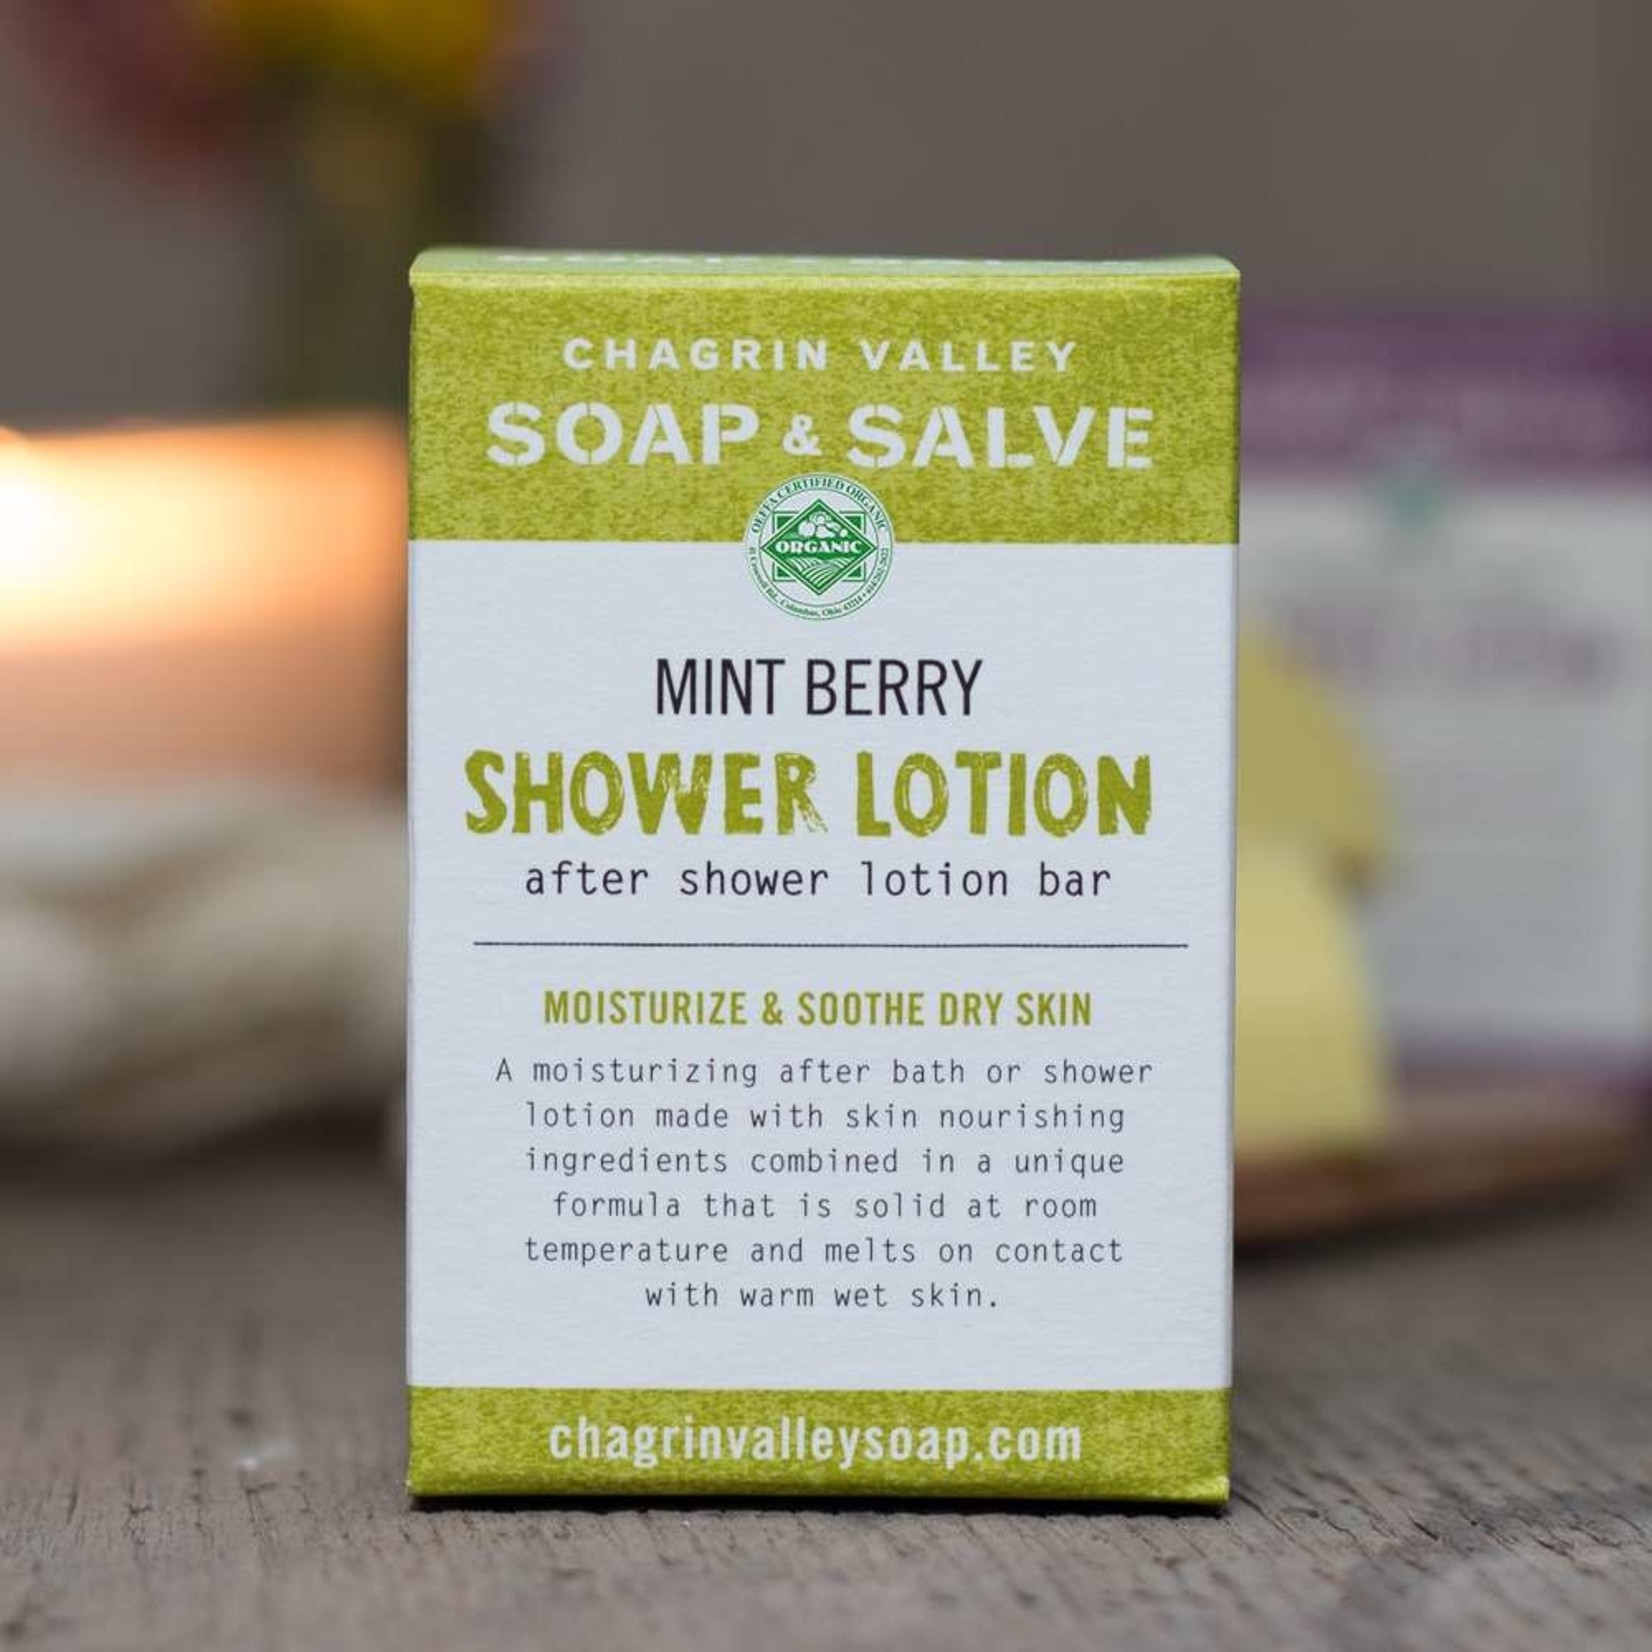 Chagrin Valley Soap and Salve Mint Berry Shower Lotion 3.5oz